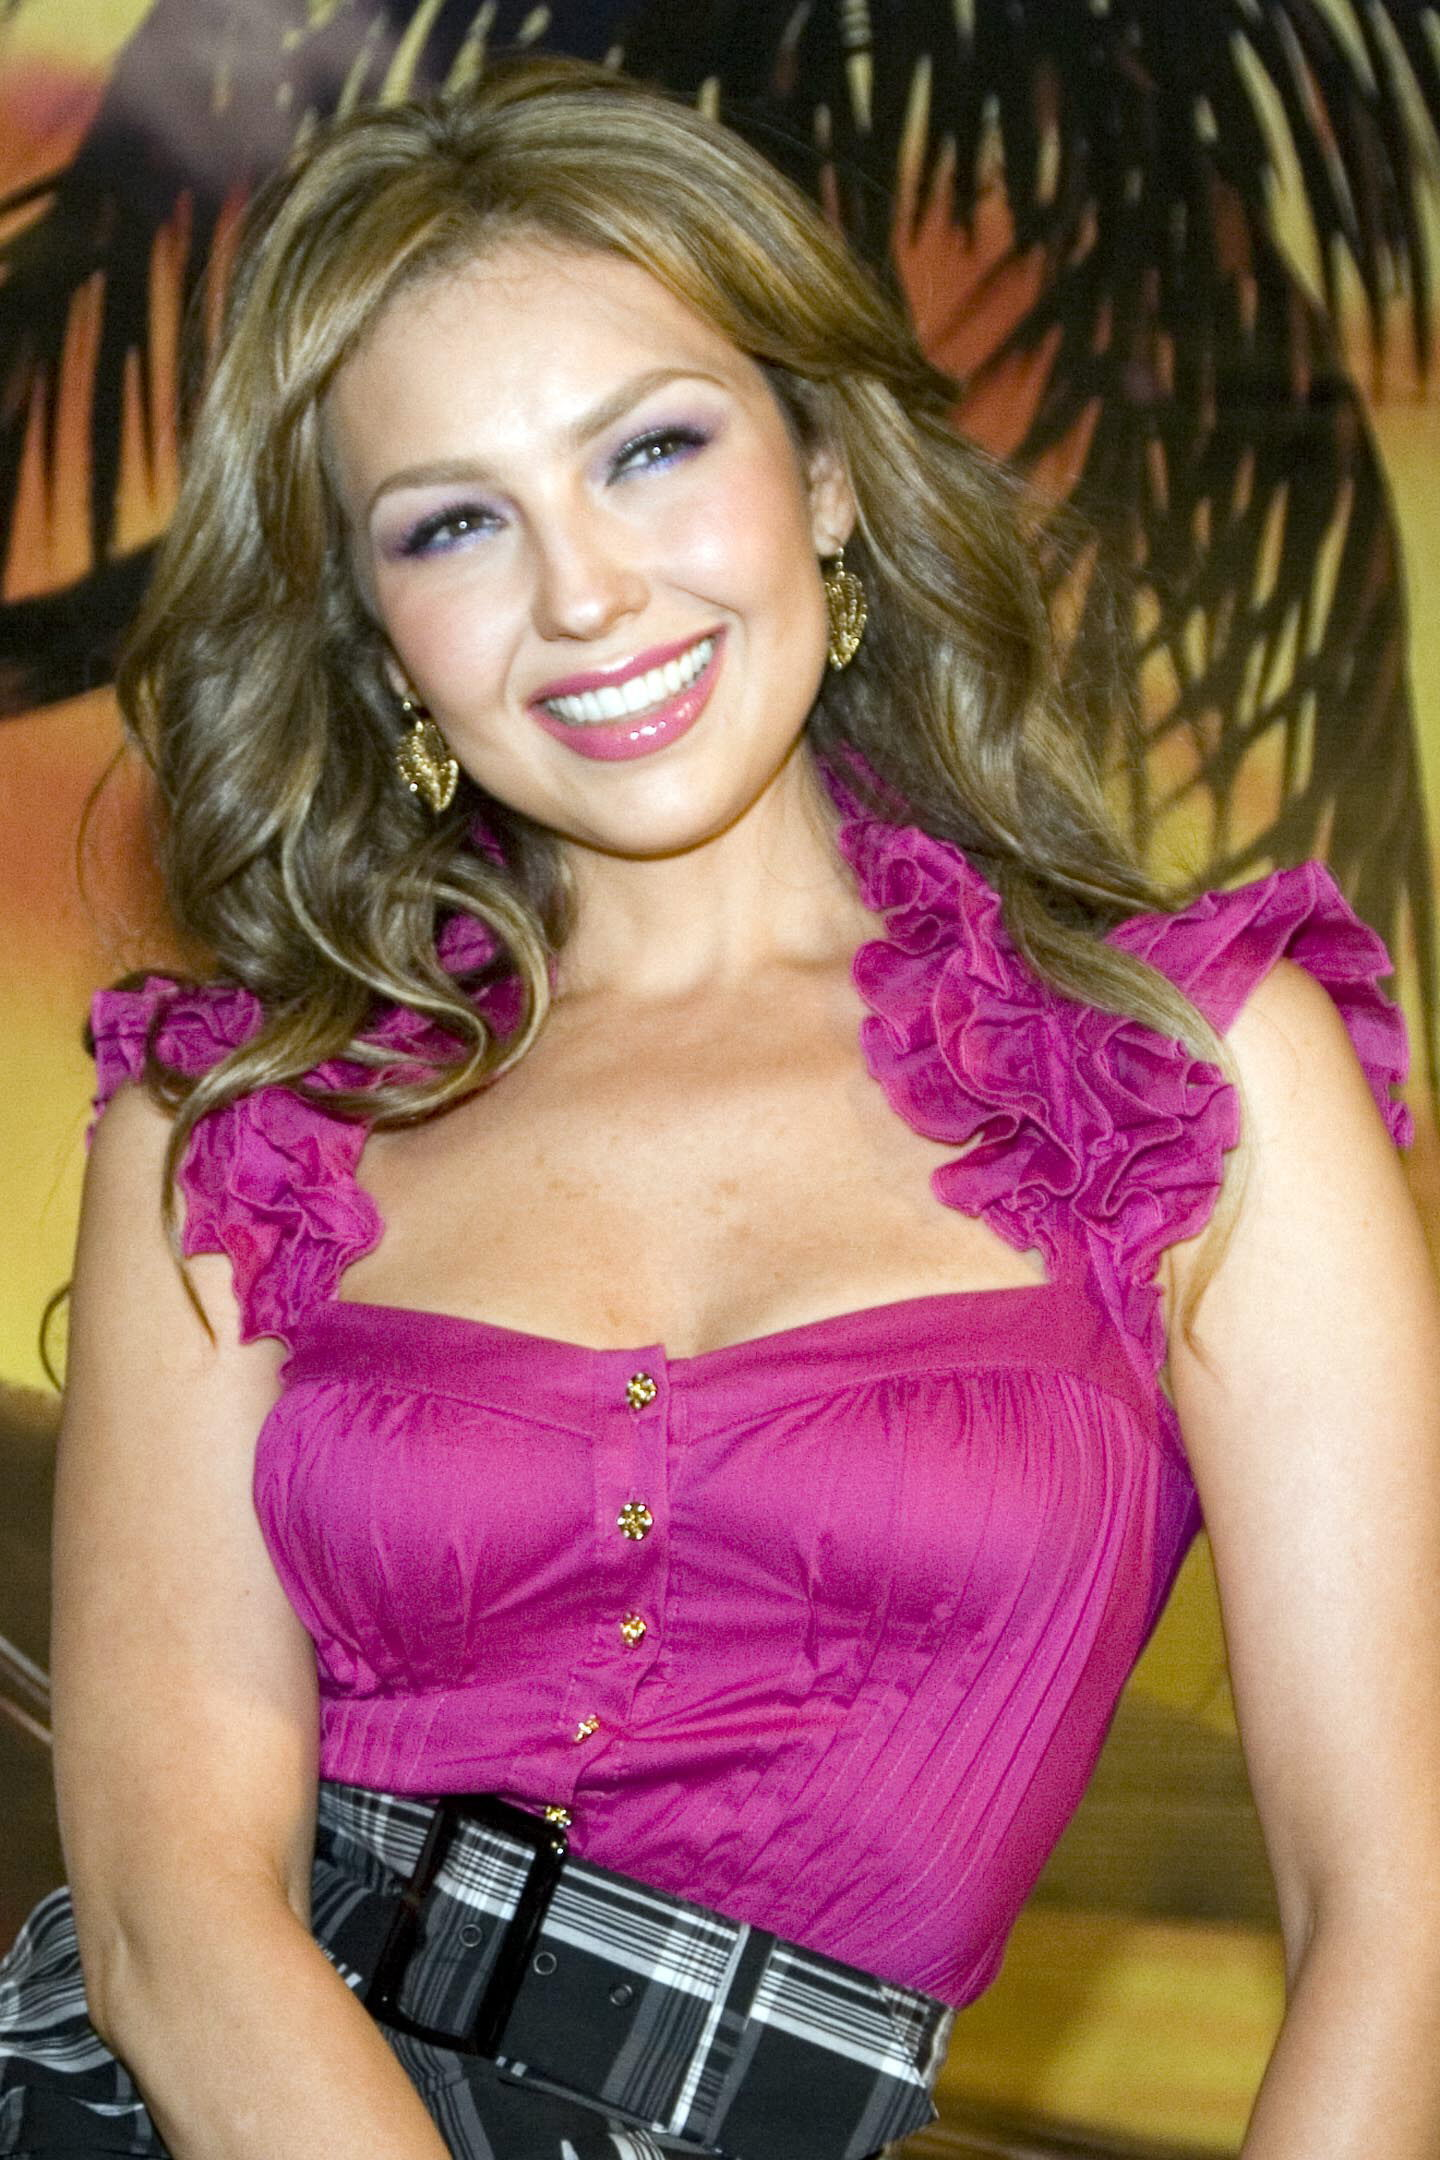 http://images2.fanpop.com/images/photos/6700000/Thalia-thalia-6708947-1440-2160.jpg